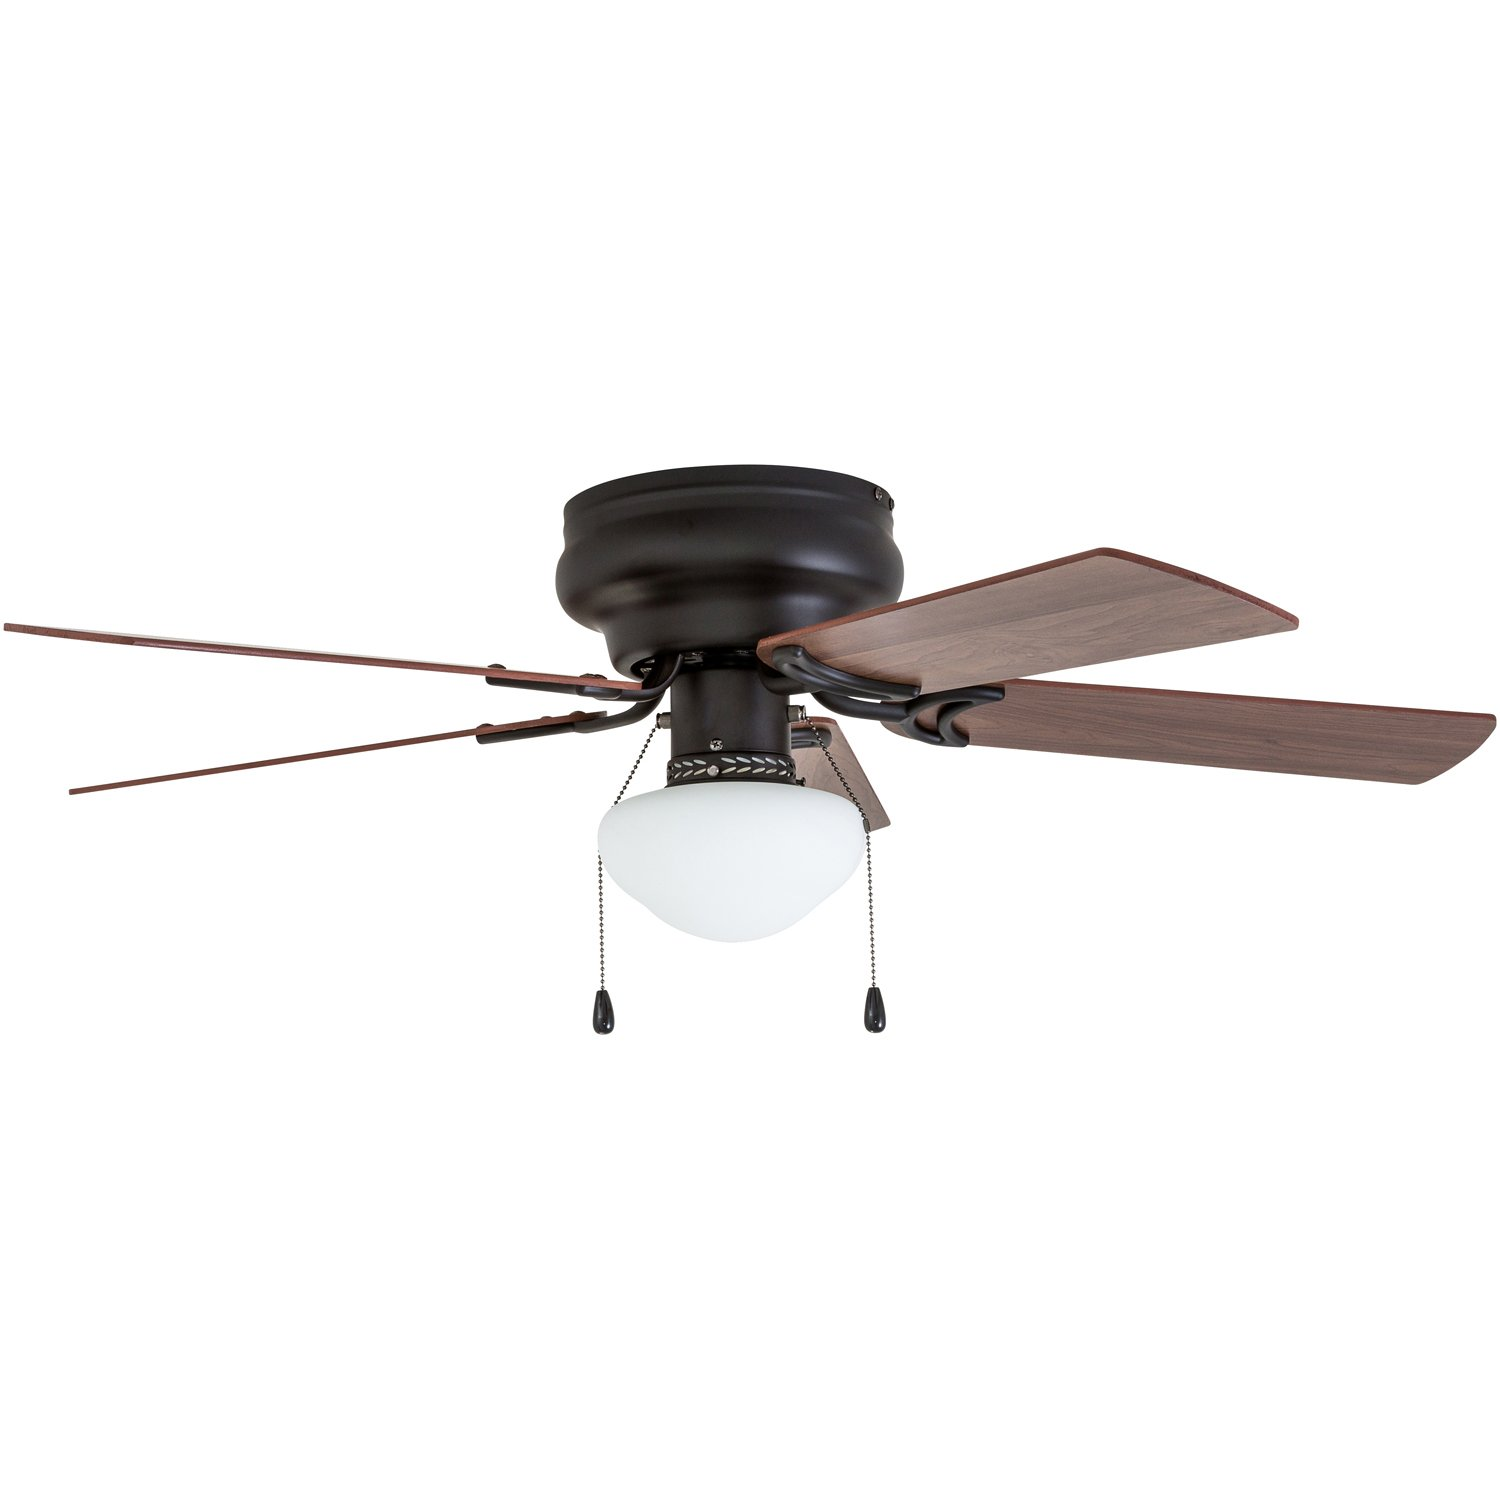 Prominence Home 50860 Alvina LED Globe Light Hugger/Low Profile Ceiling Fan, 42 inches, Bronze by Prominence Home (Image #4)